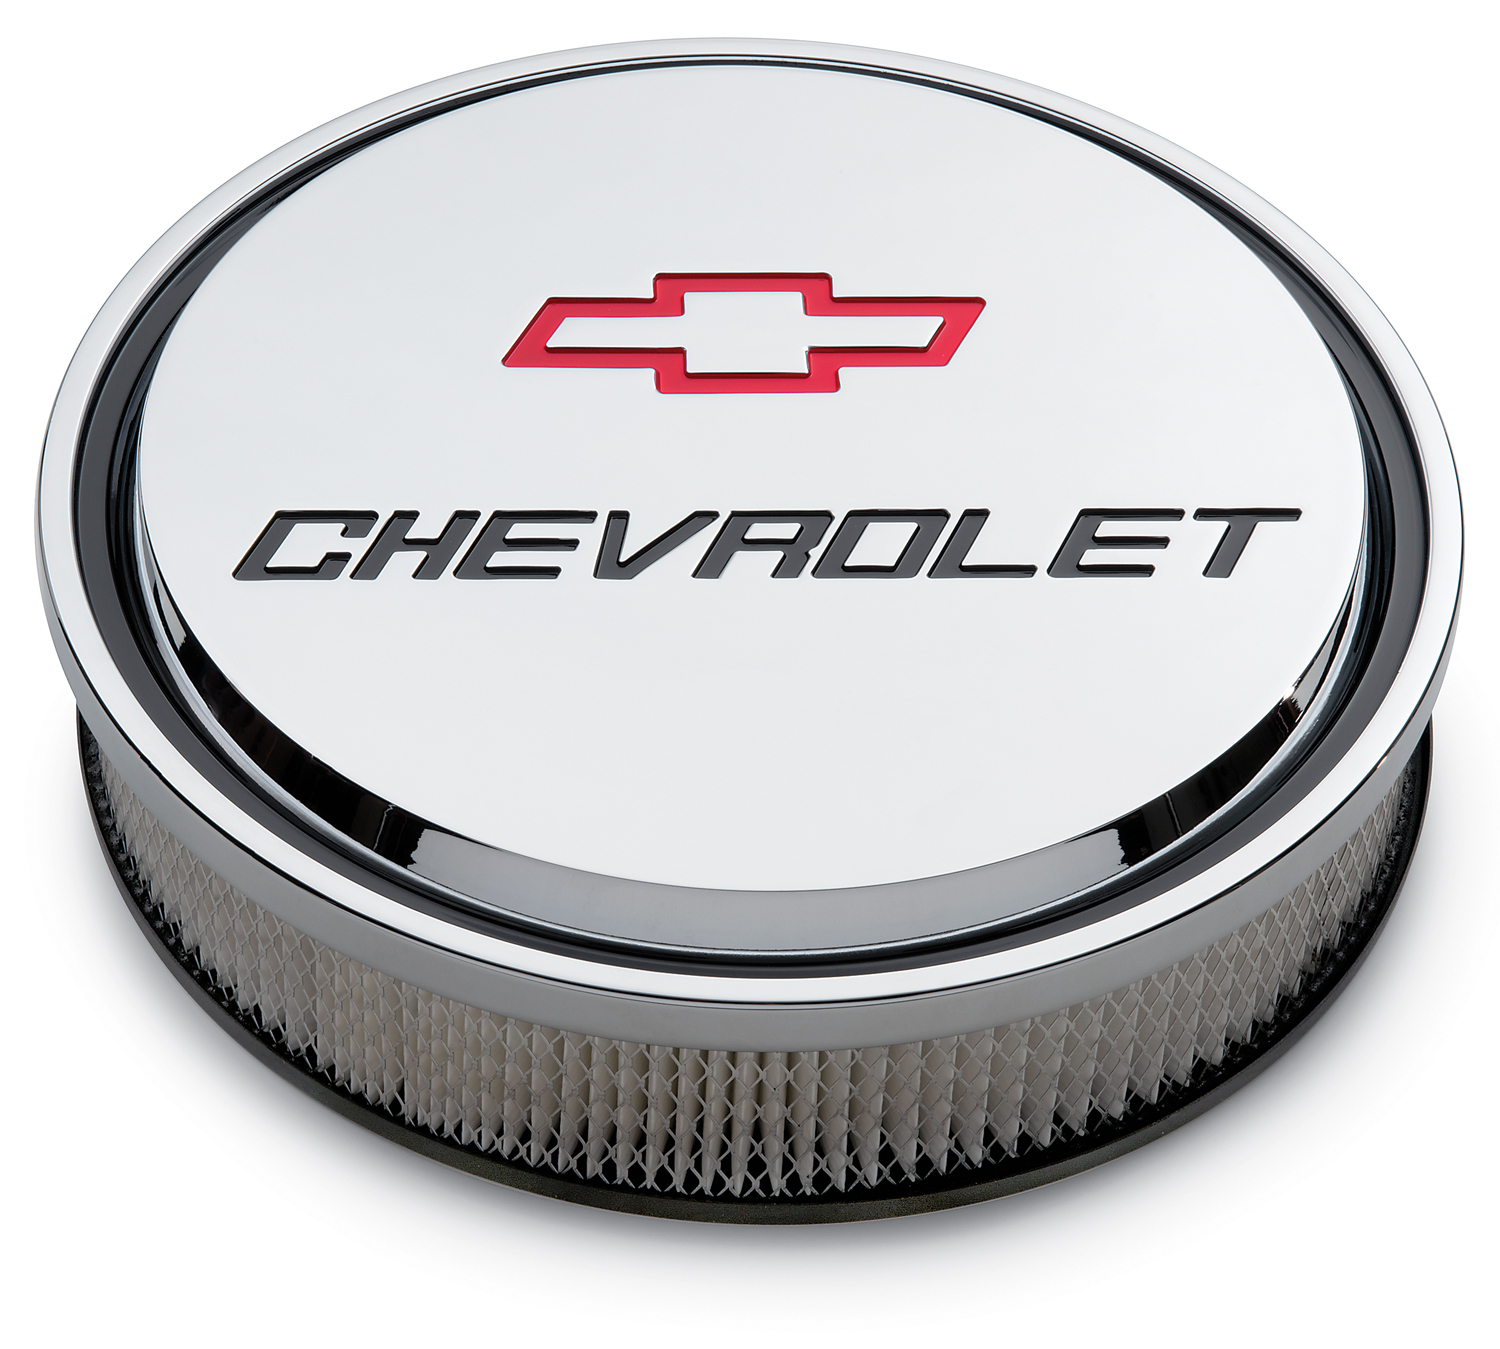 Proform 14 Inch Air Cleaner Kit Alunimum Chrome Recessed Chevy and Bowtie Emblems Chevrolet Performance Parts